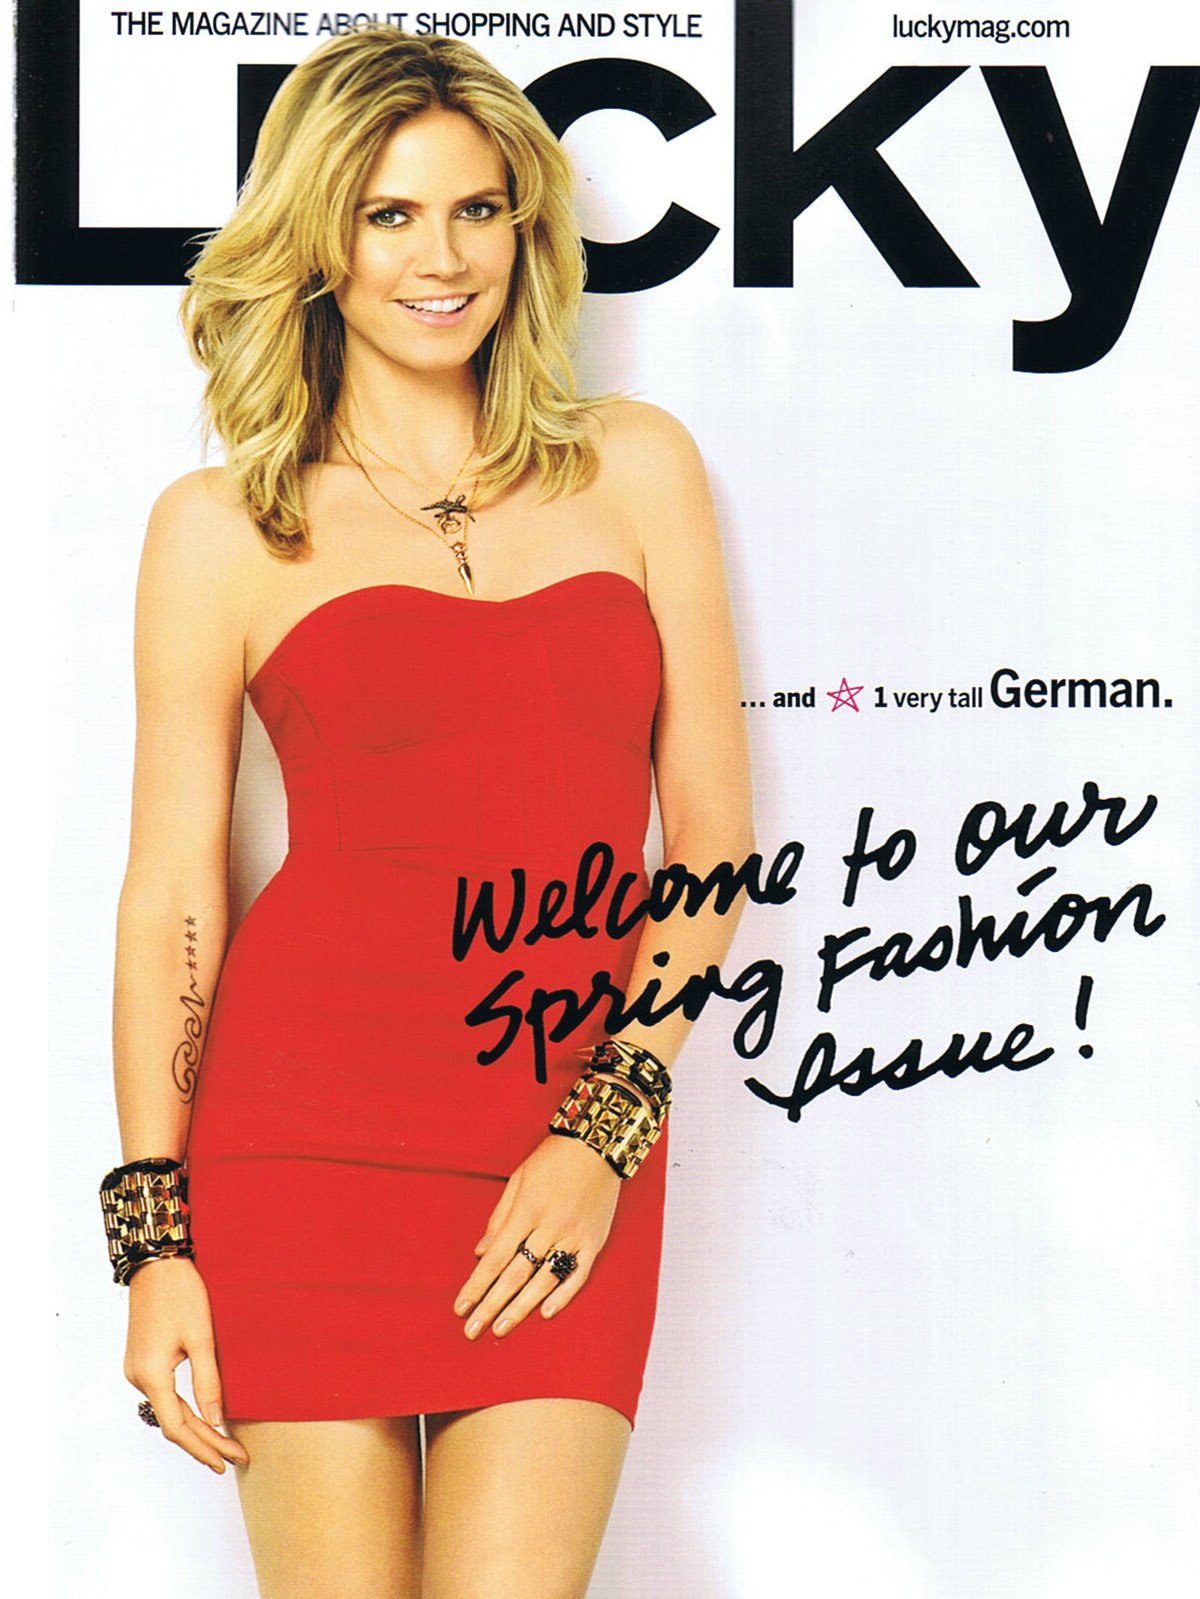 Lucky Magazine May 11: RAW Information Group: LUCKY JESSICA WINZELBERG / LUCKY